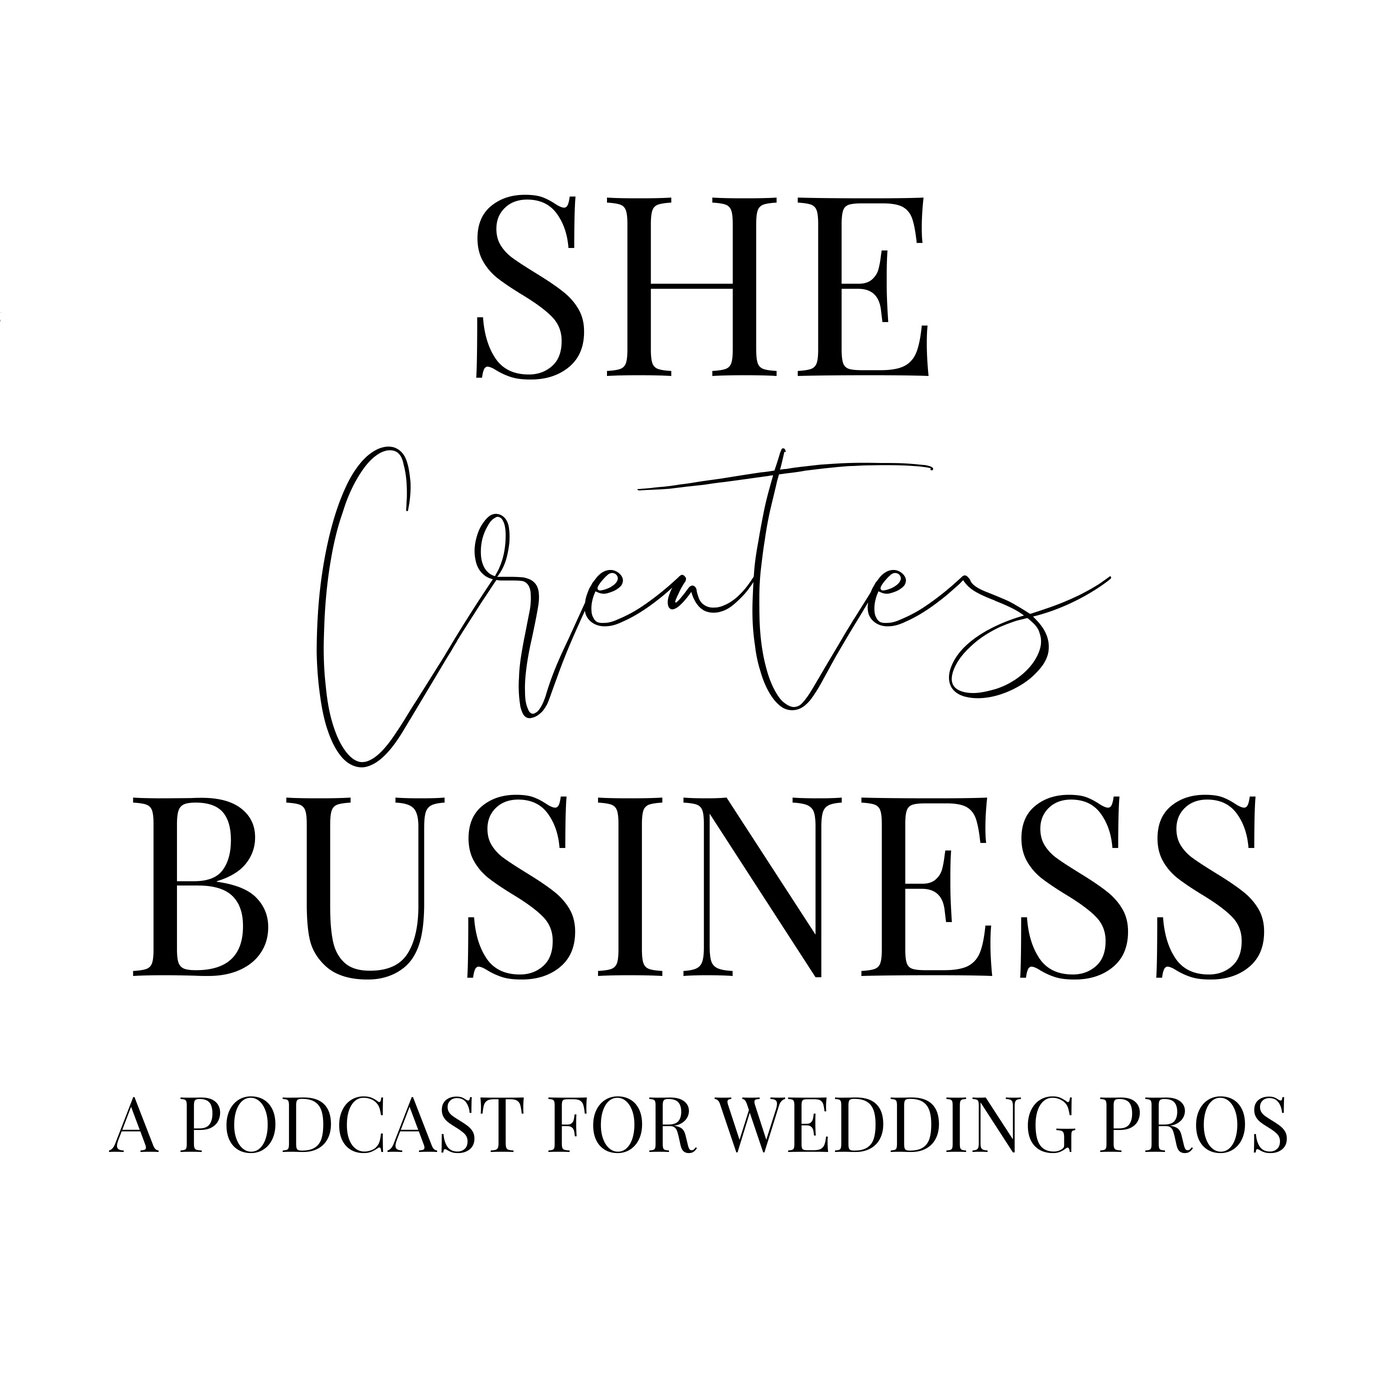 taylrd-media-and-designs-she-creates-business-podcast-for-wedding-pros.jpg